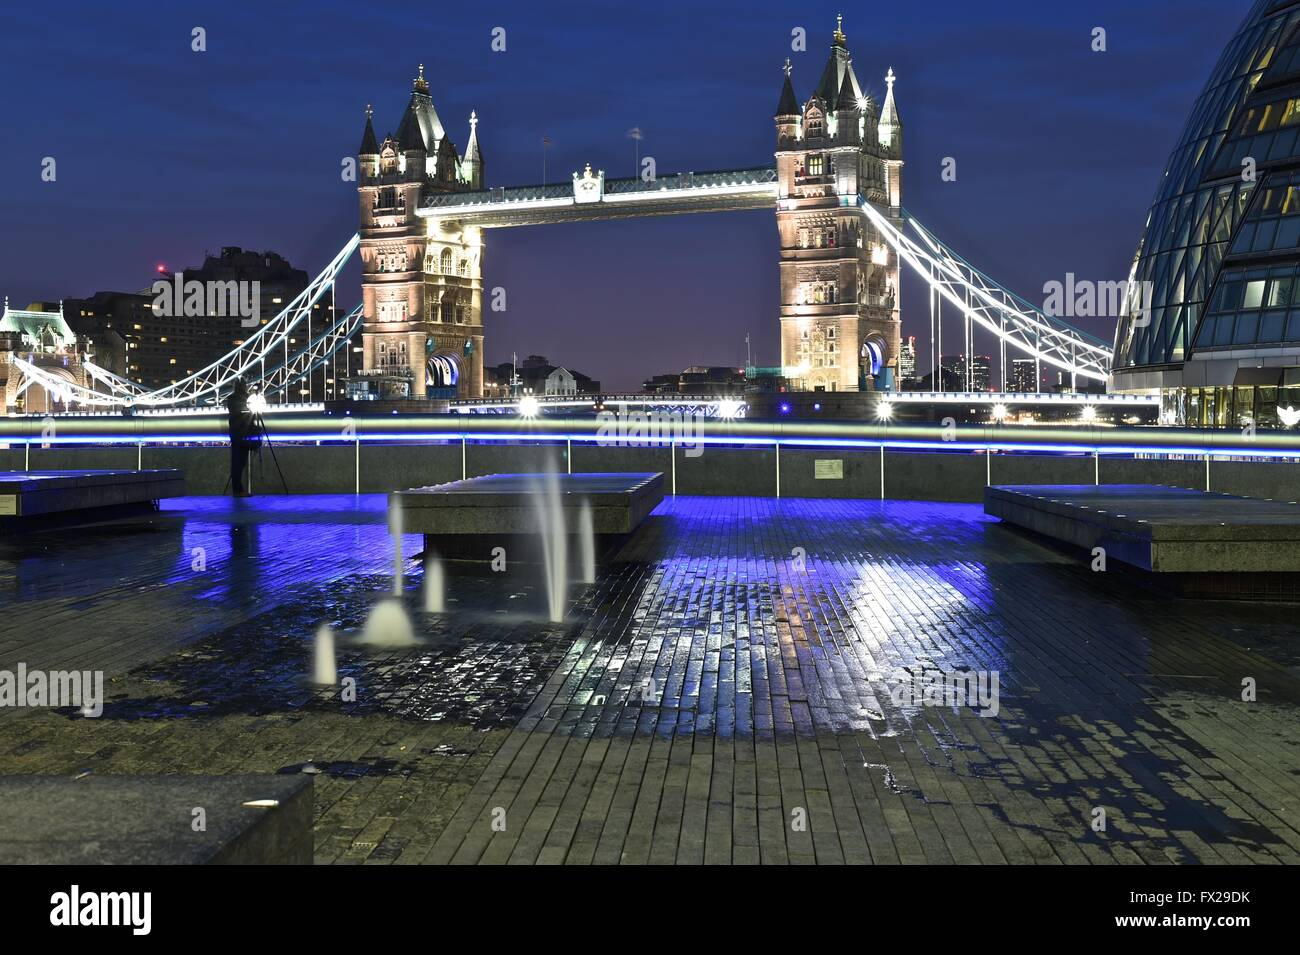 London City, Tower Bridge, River Thames, Night sky - Stock Image